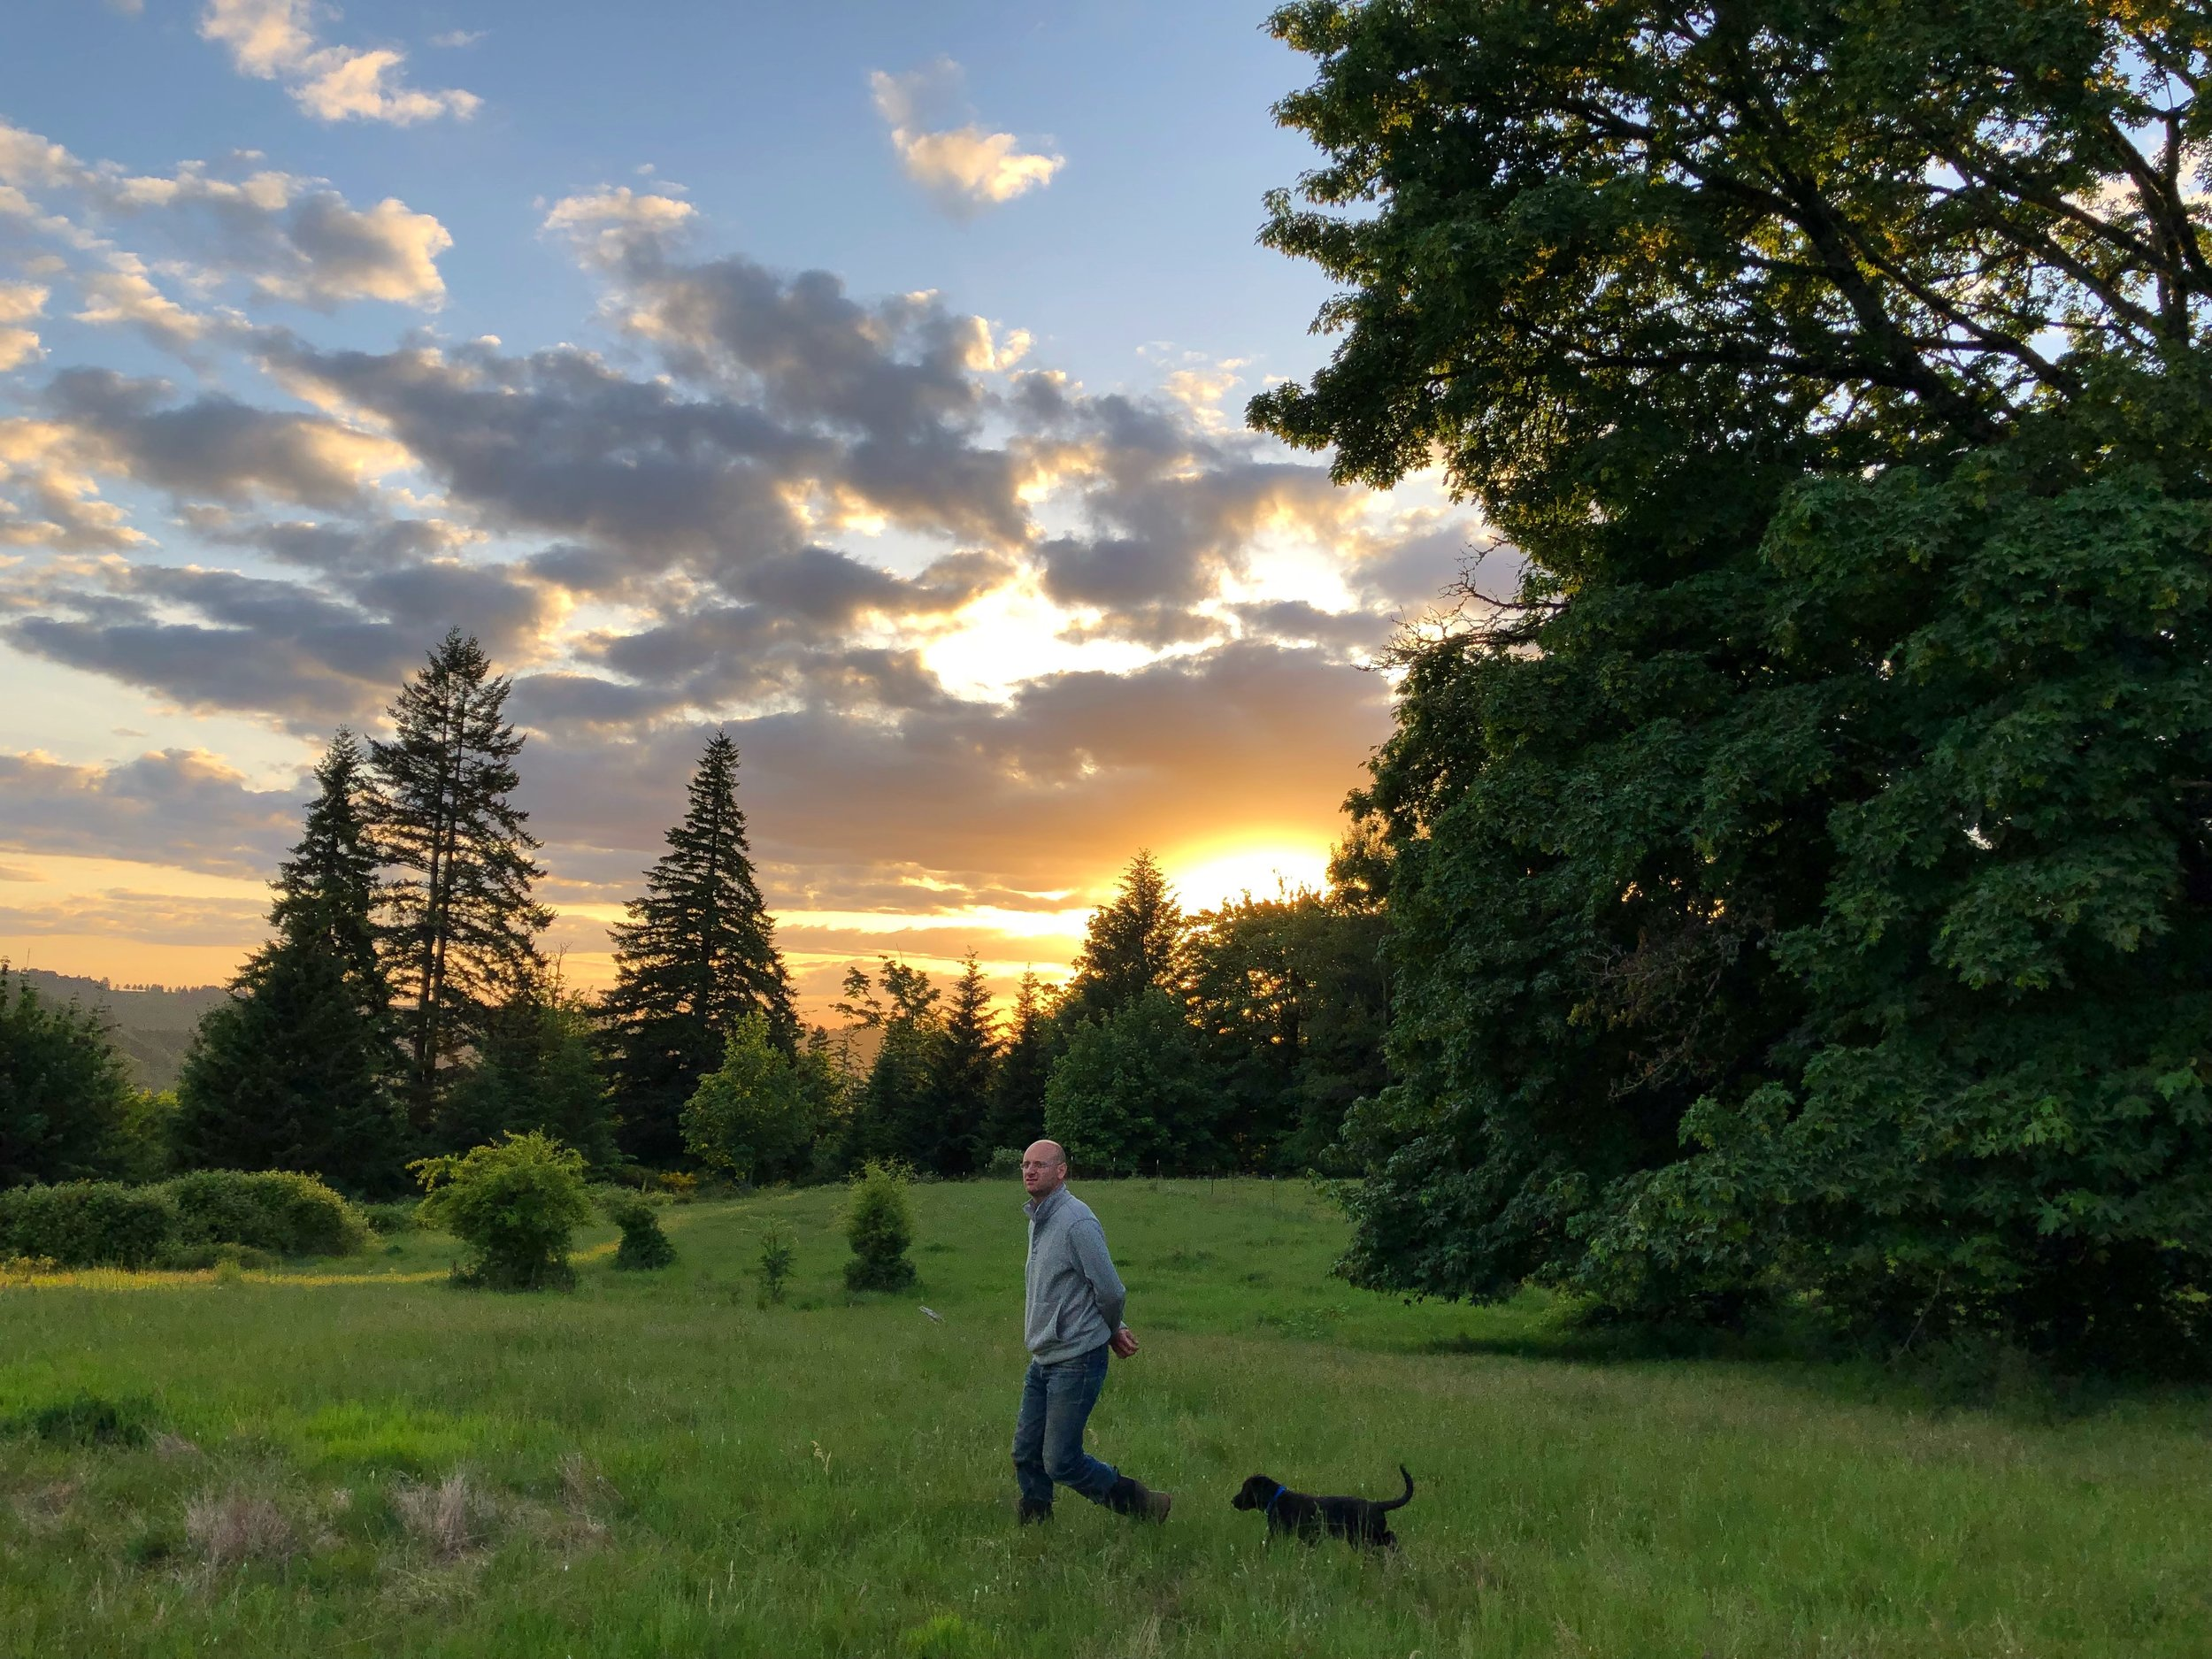 Josh and the pup in the pastures